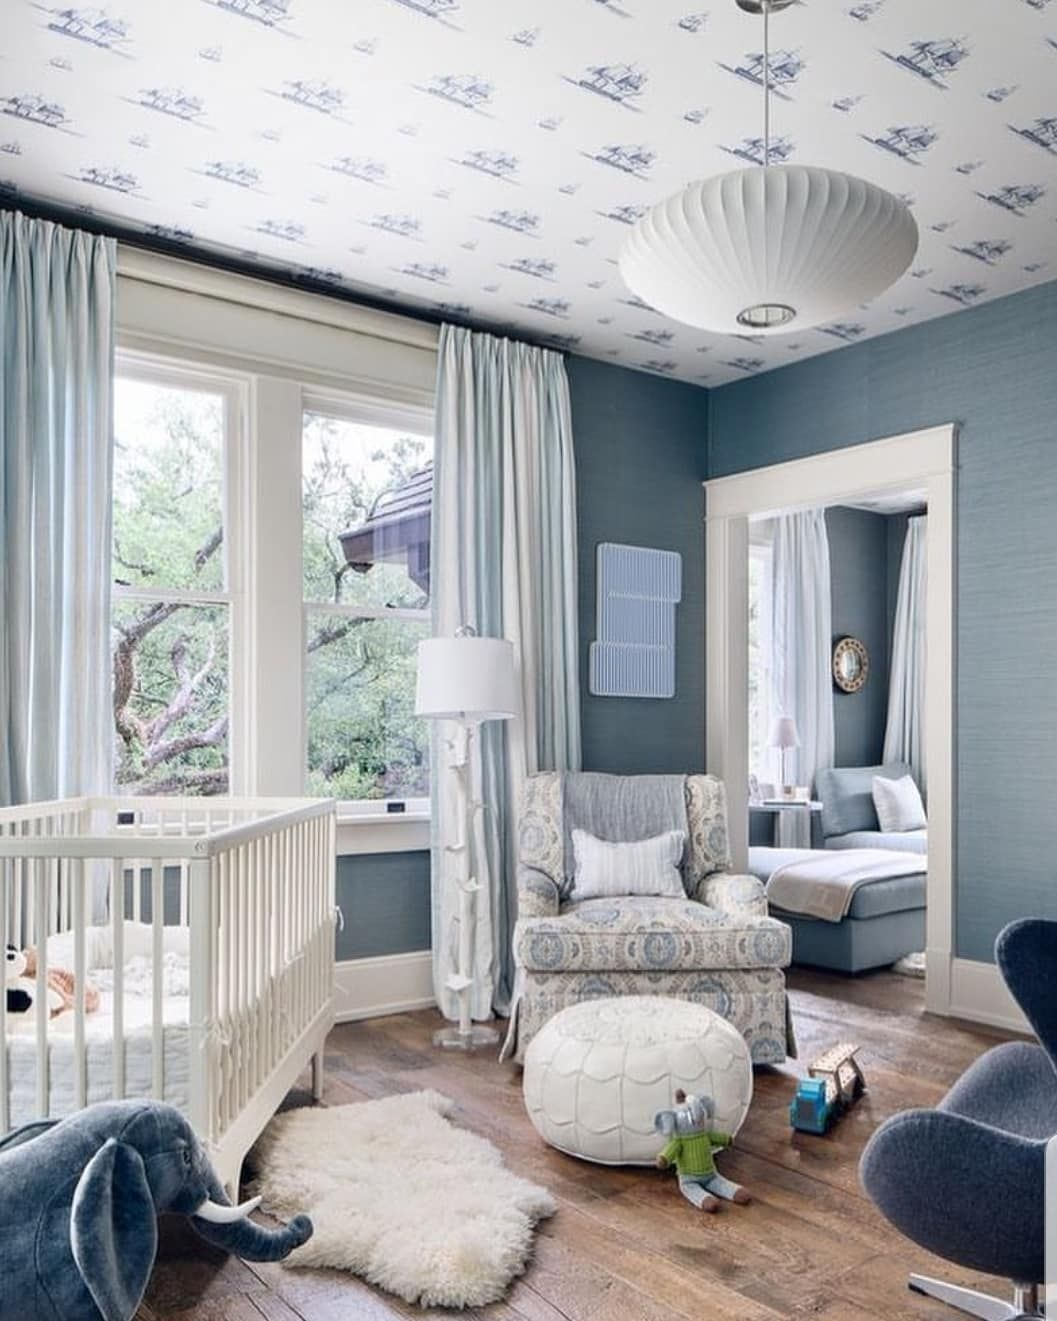 About Blue Inspirations In 2019 Baby Boy Rooms Luxury